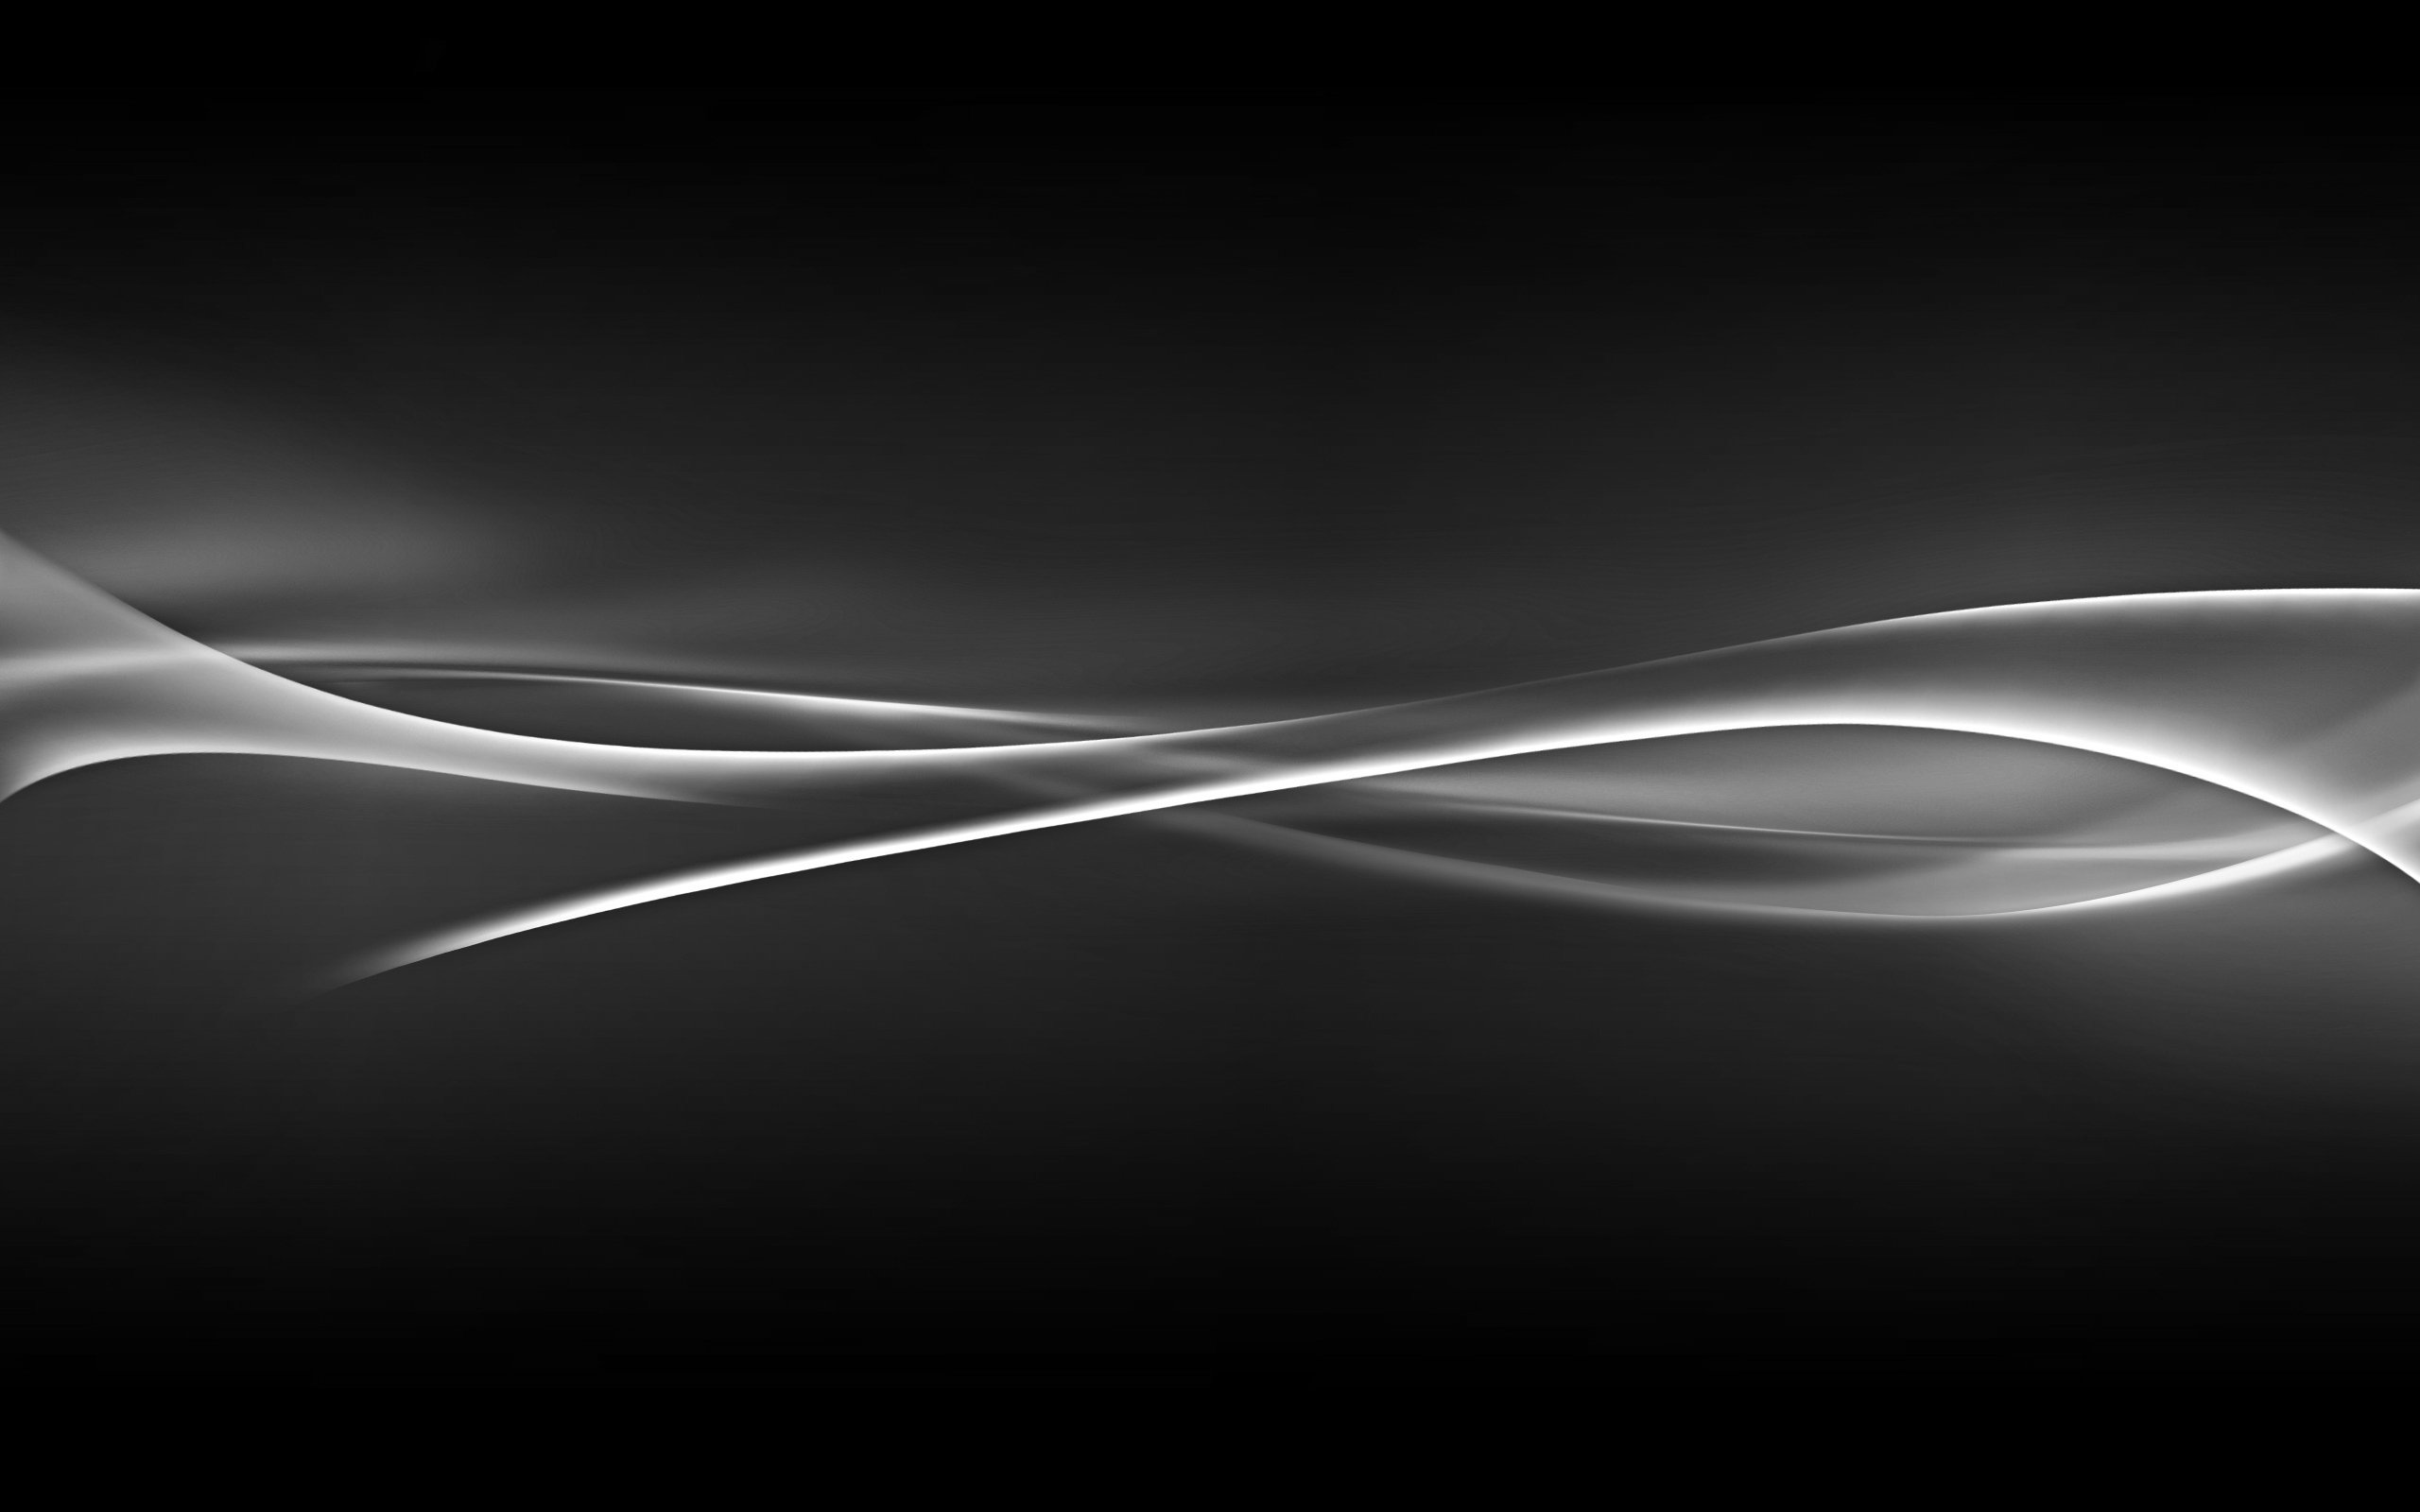 Black and white abstract swirls hd wallpaper background HD 2560x1600